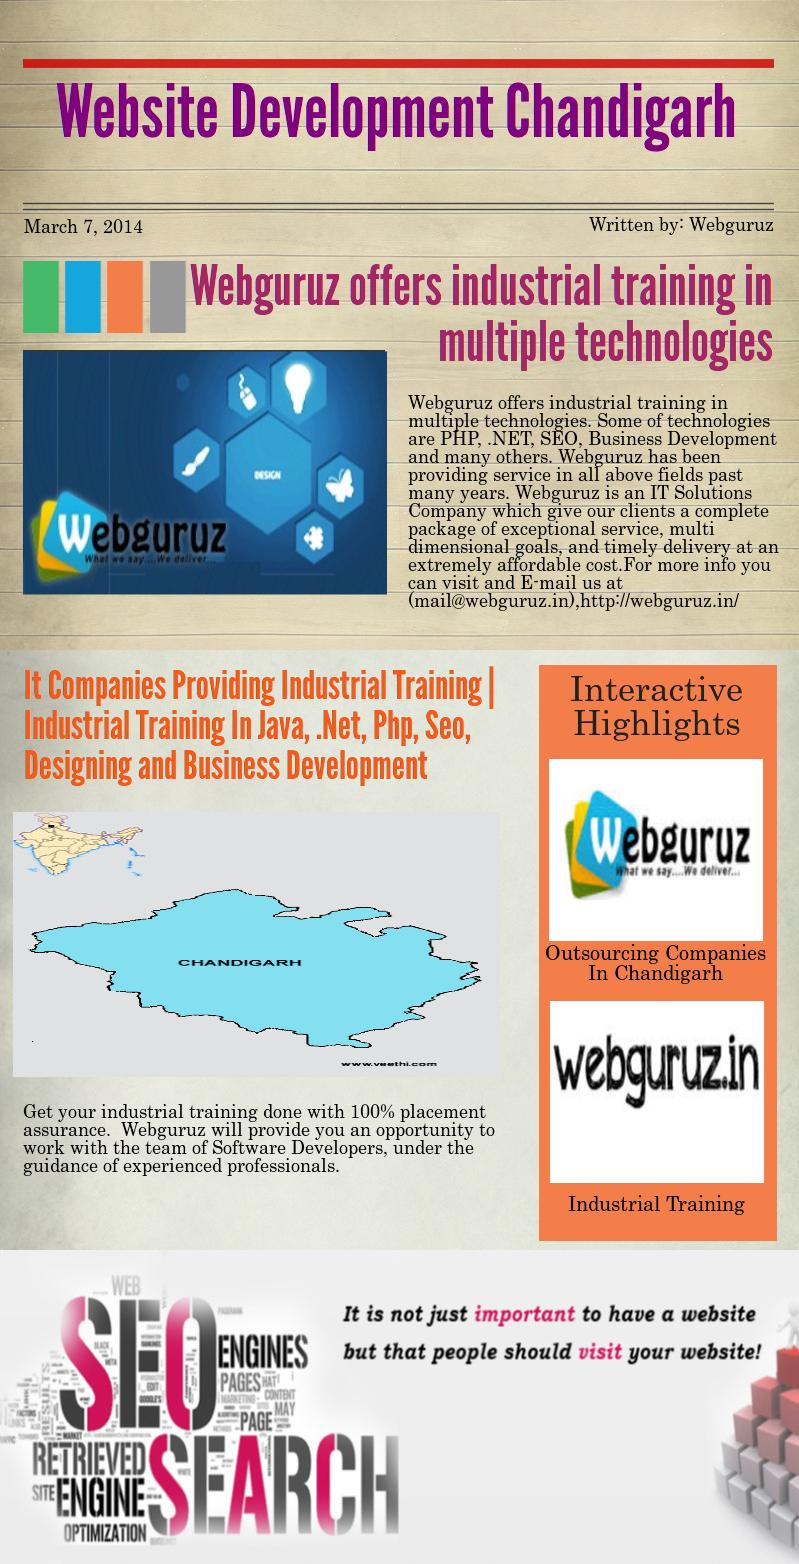 Software Developer Companies In Software Development Companies In Chandigarh Visual Ly